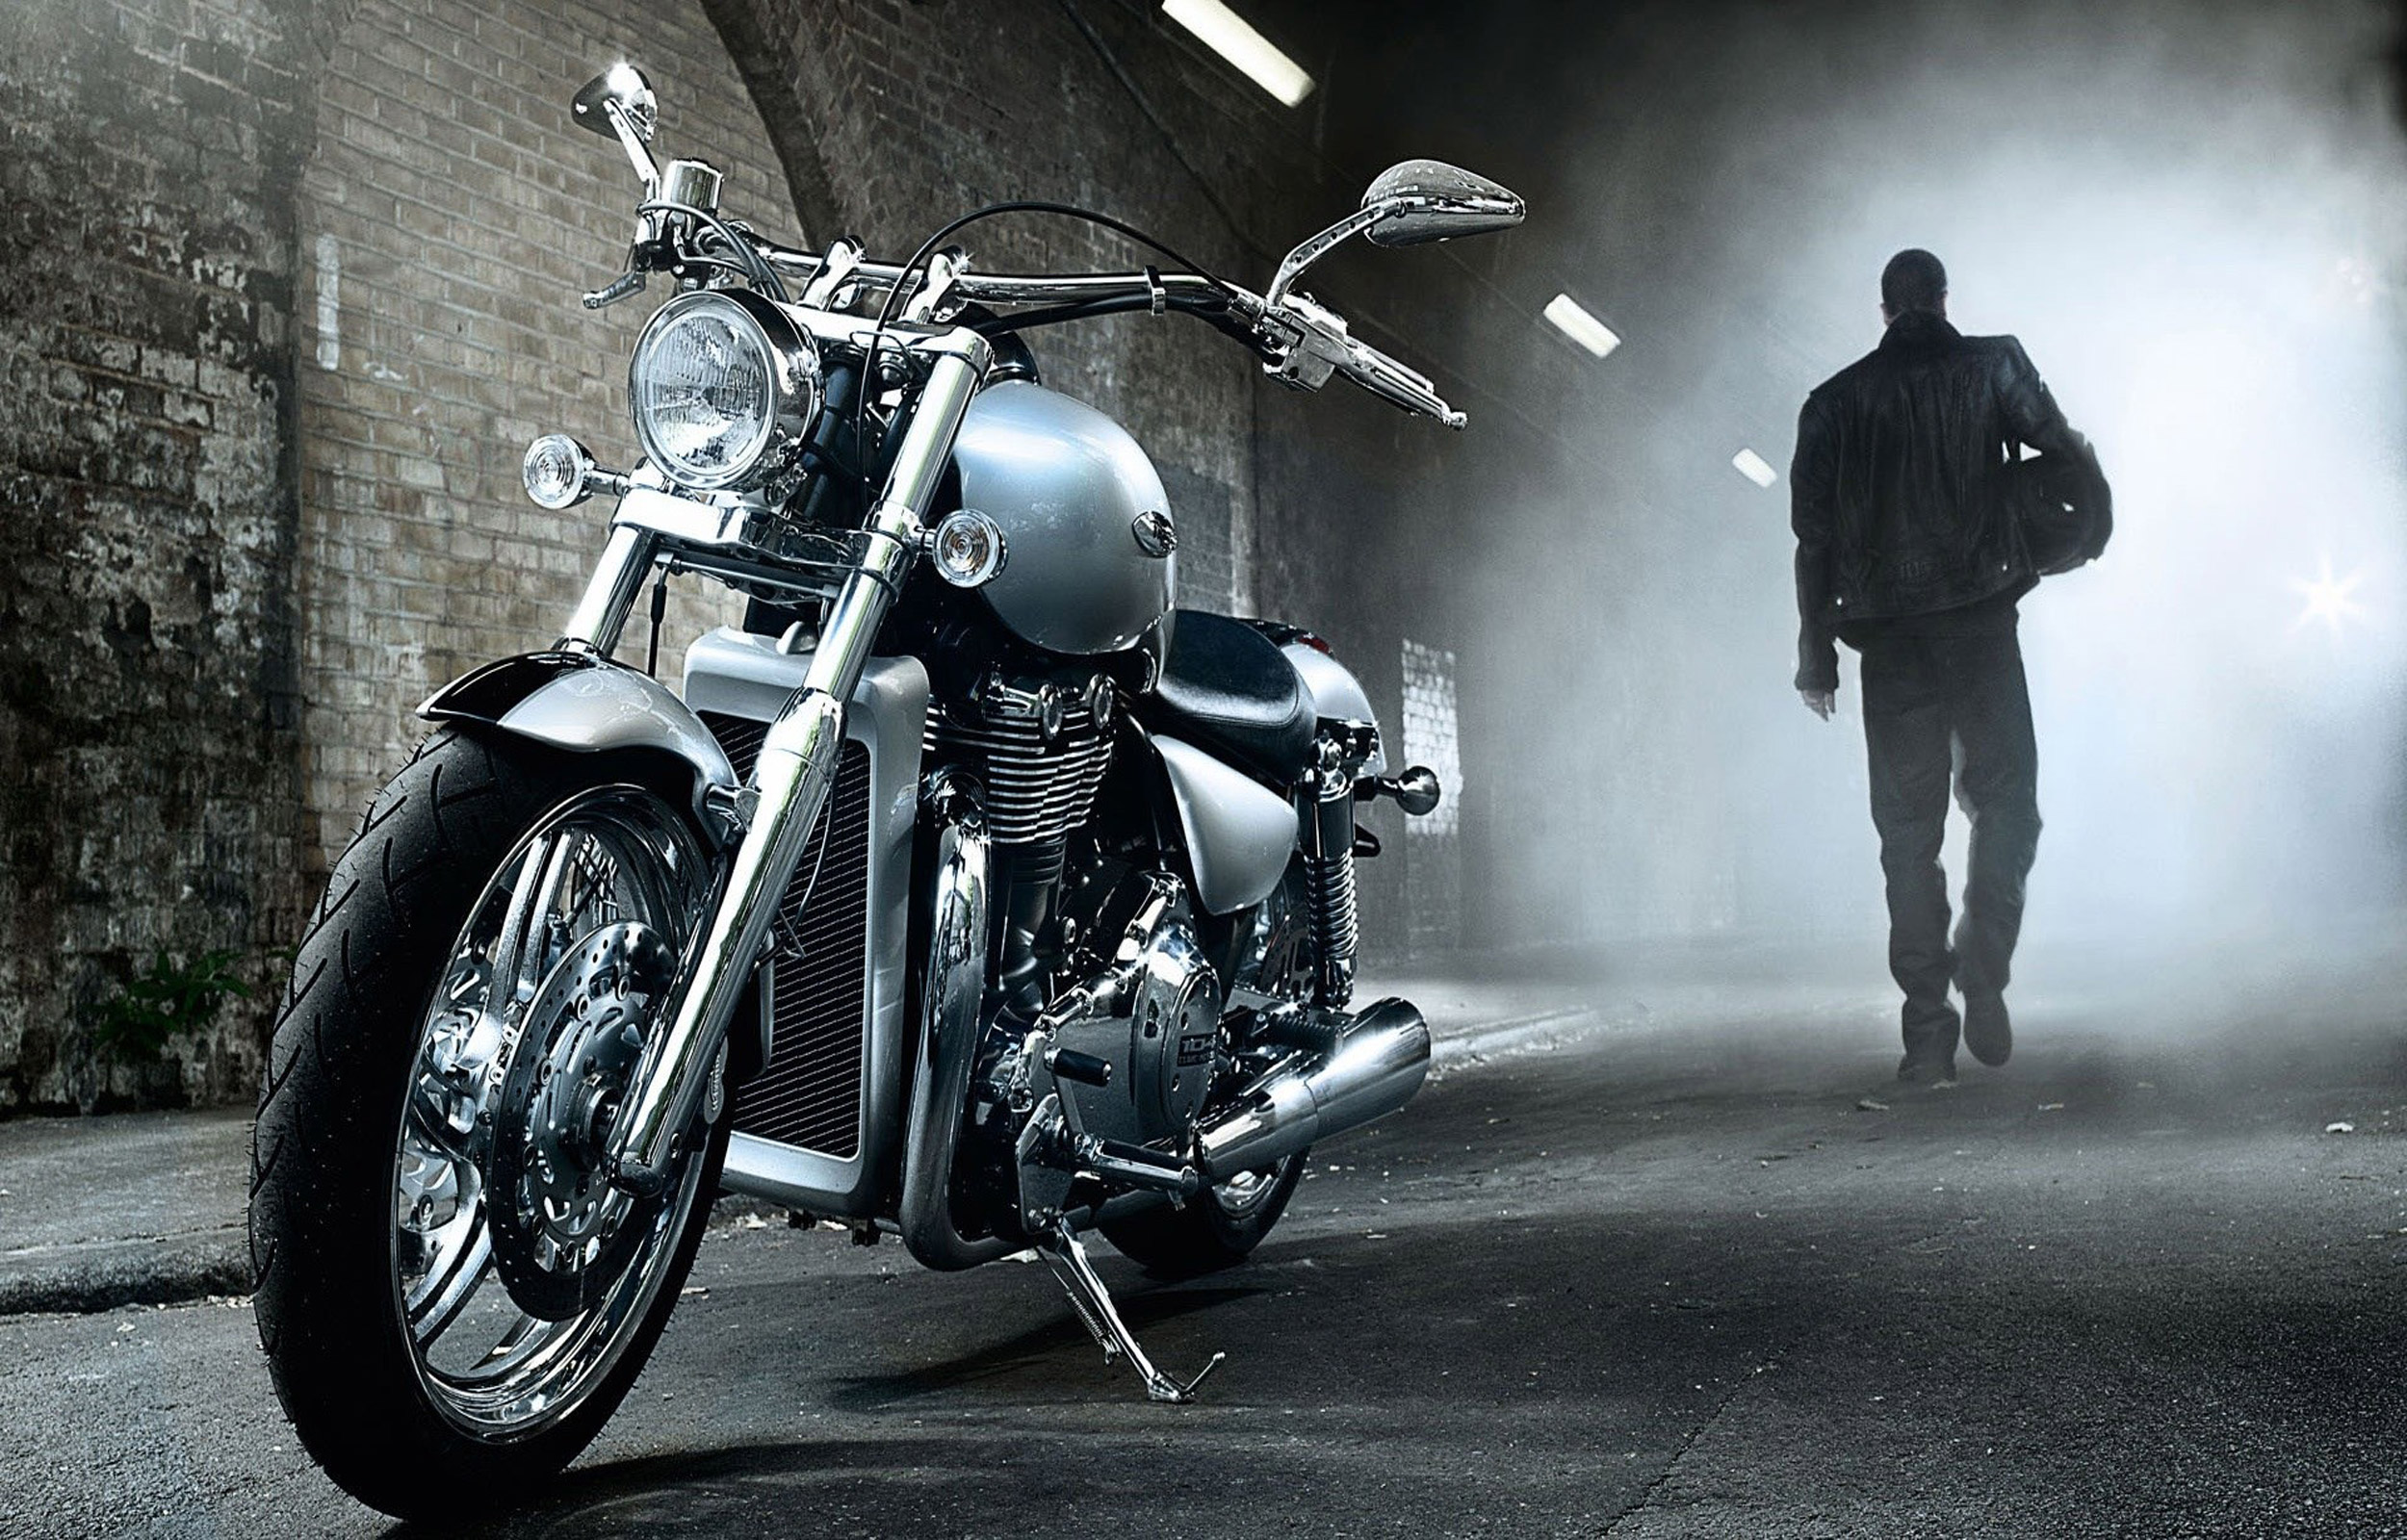 Harley Davidson Wallpaper Download 2500x1600